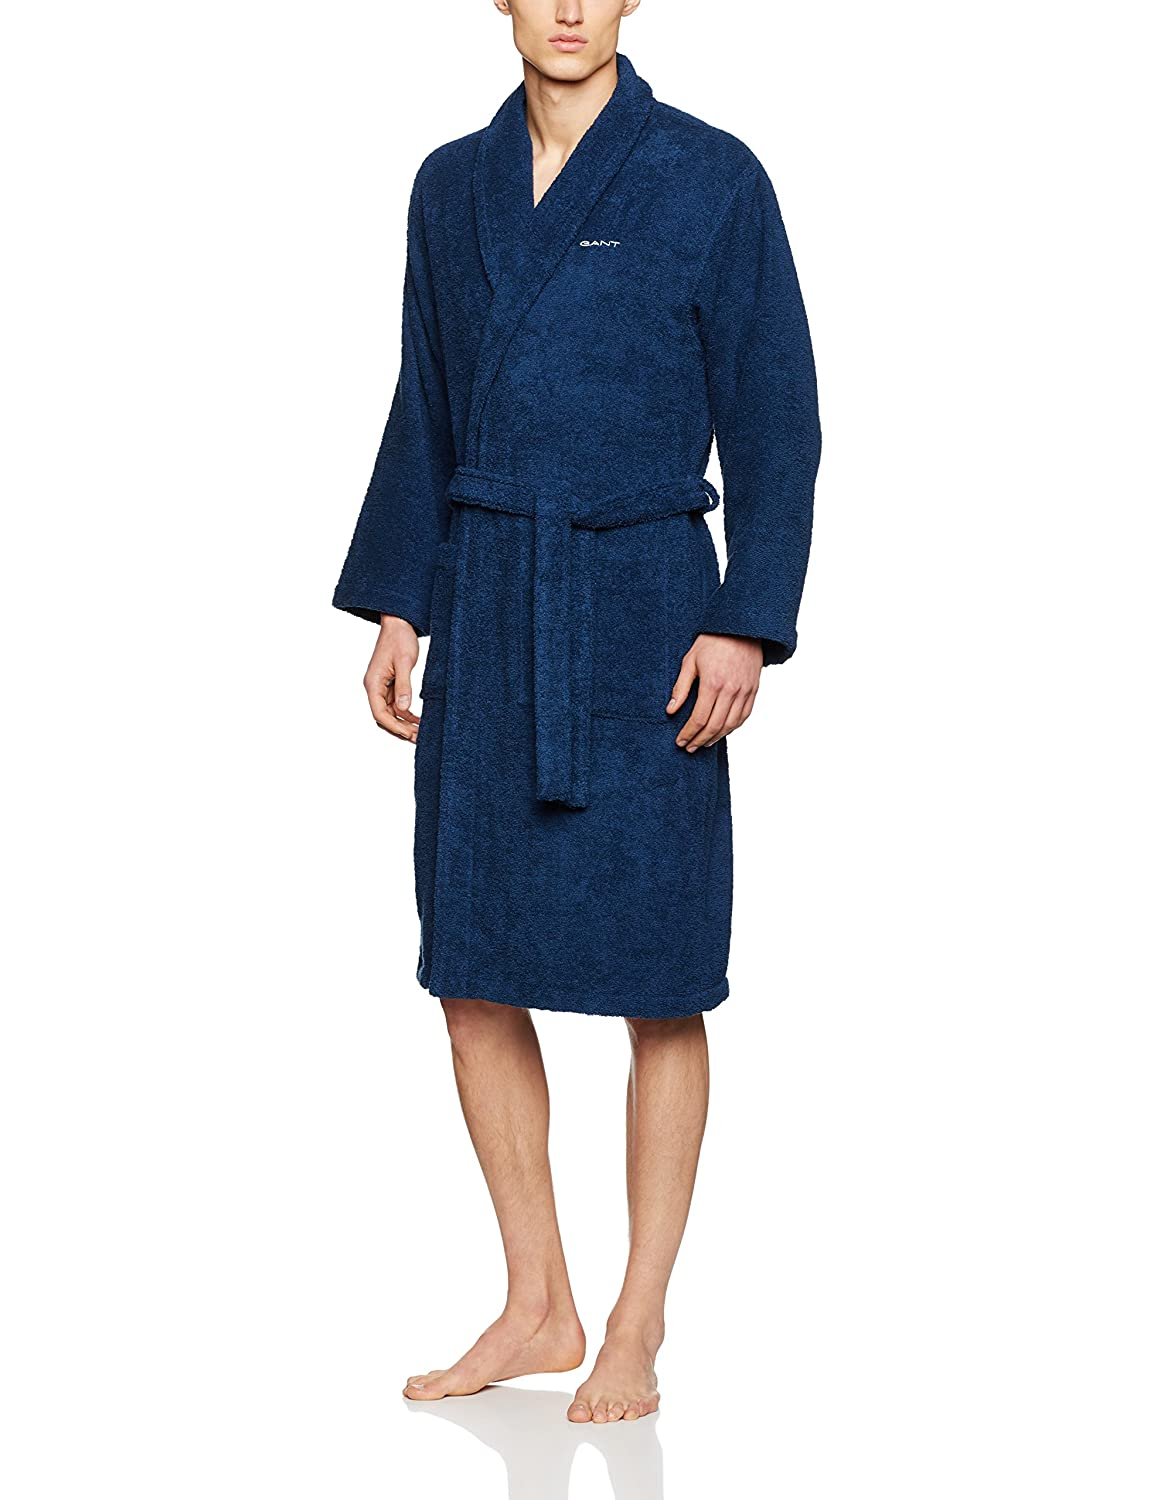 GANT Herren Bademantel Terry Robe, Blau, One size